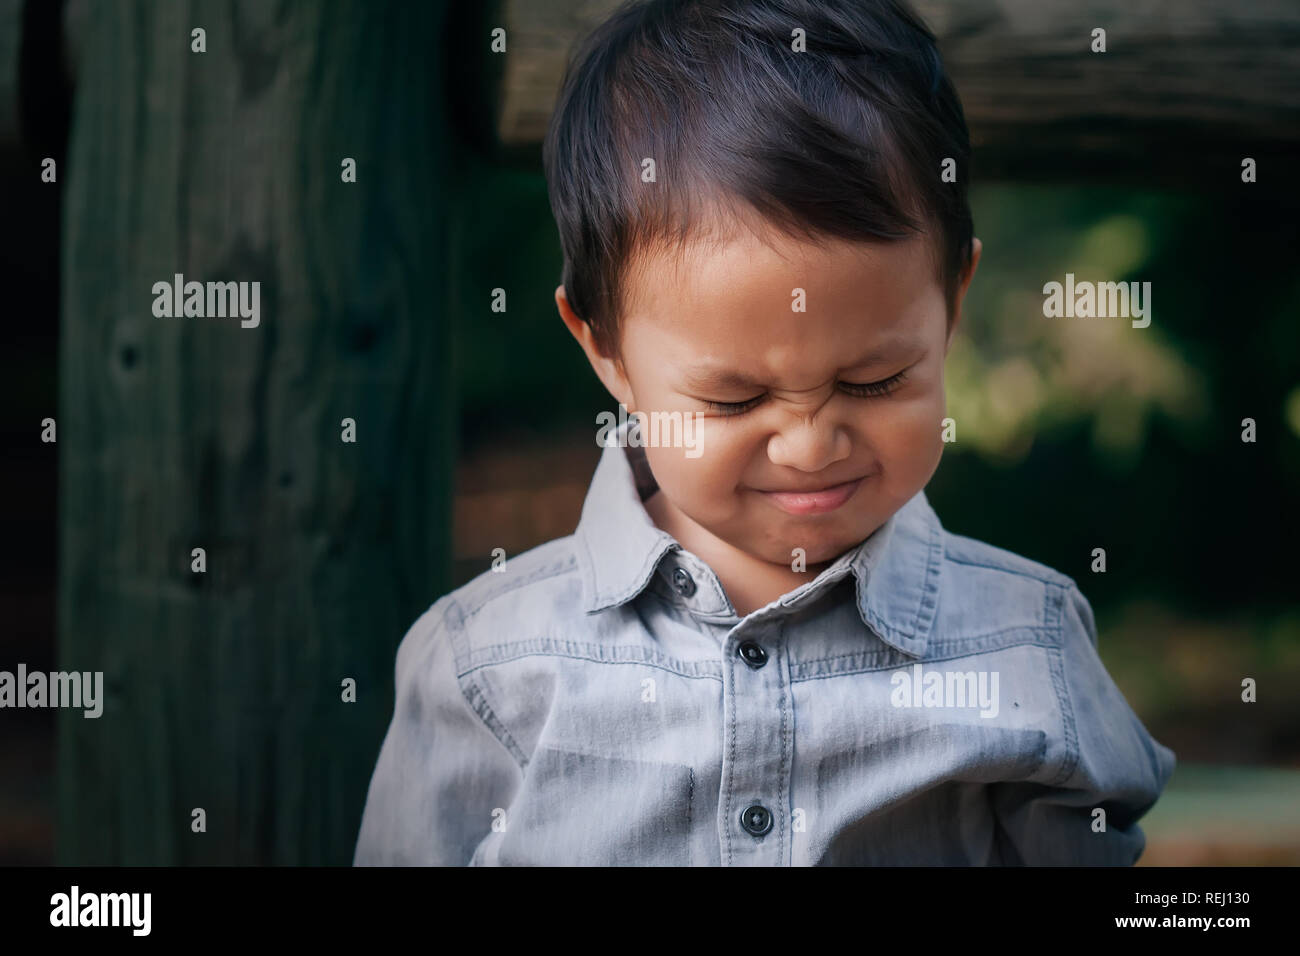 A little boy crying or throwing a temper tantrum with a frowned face, associated with emotional distress. - Stock Image